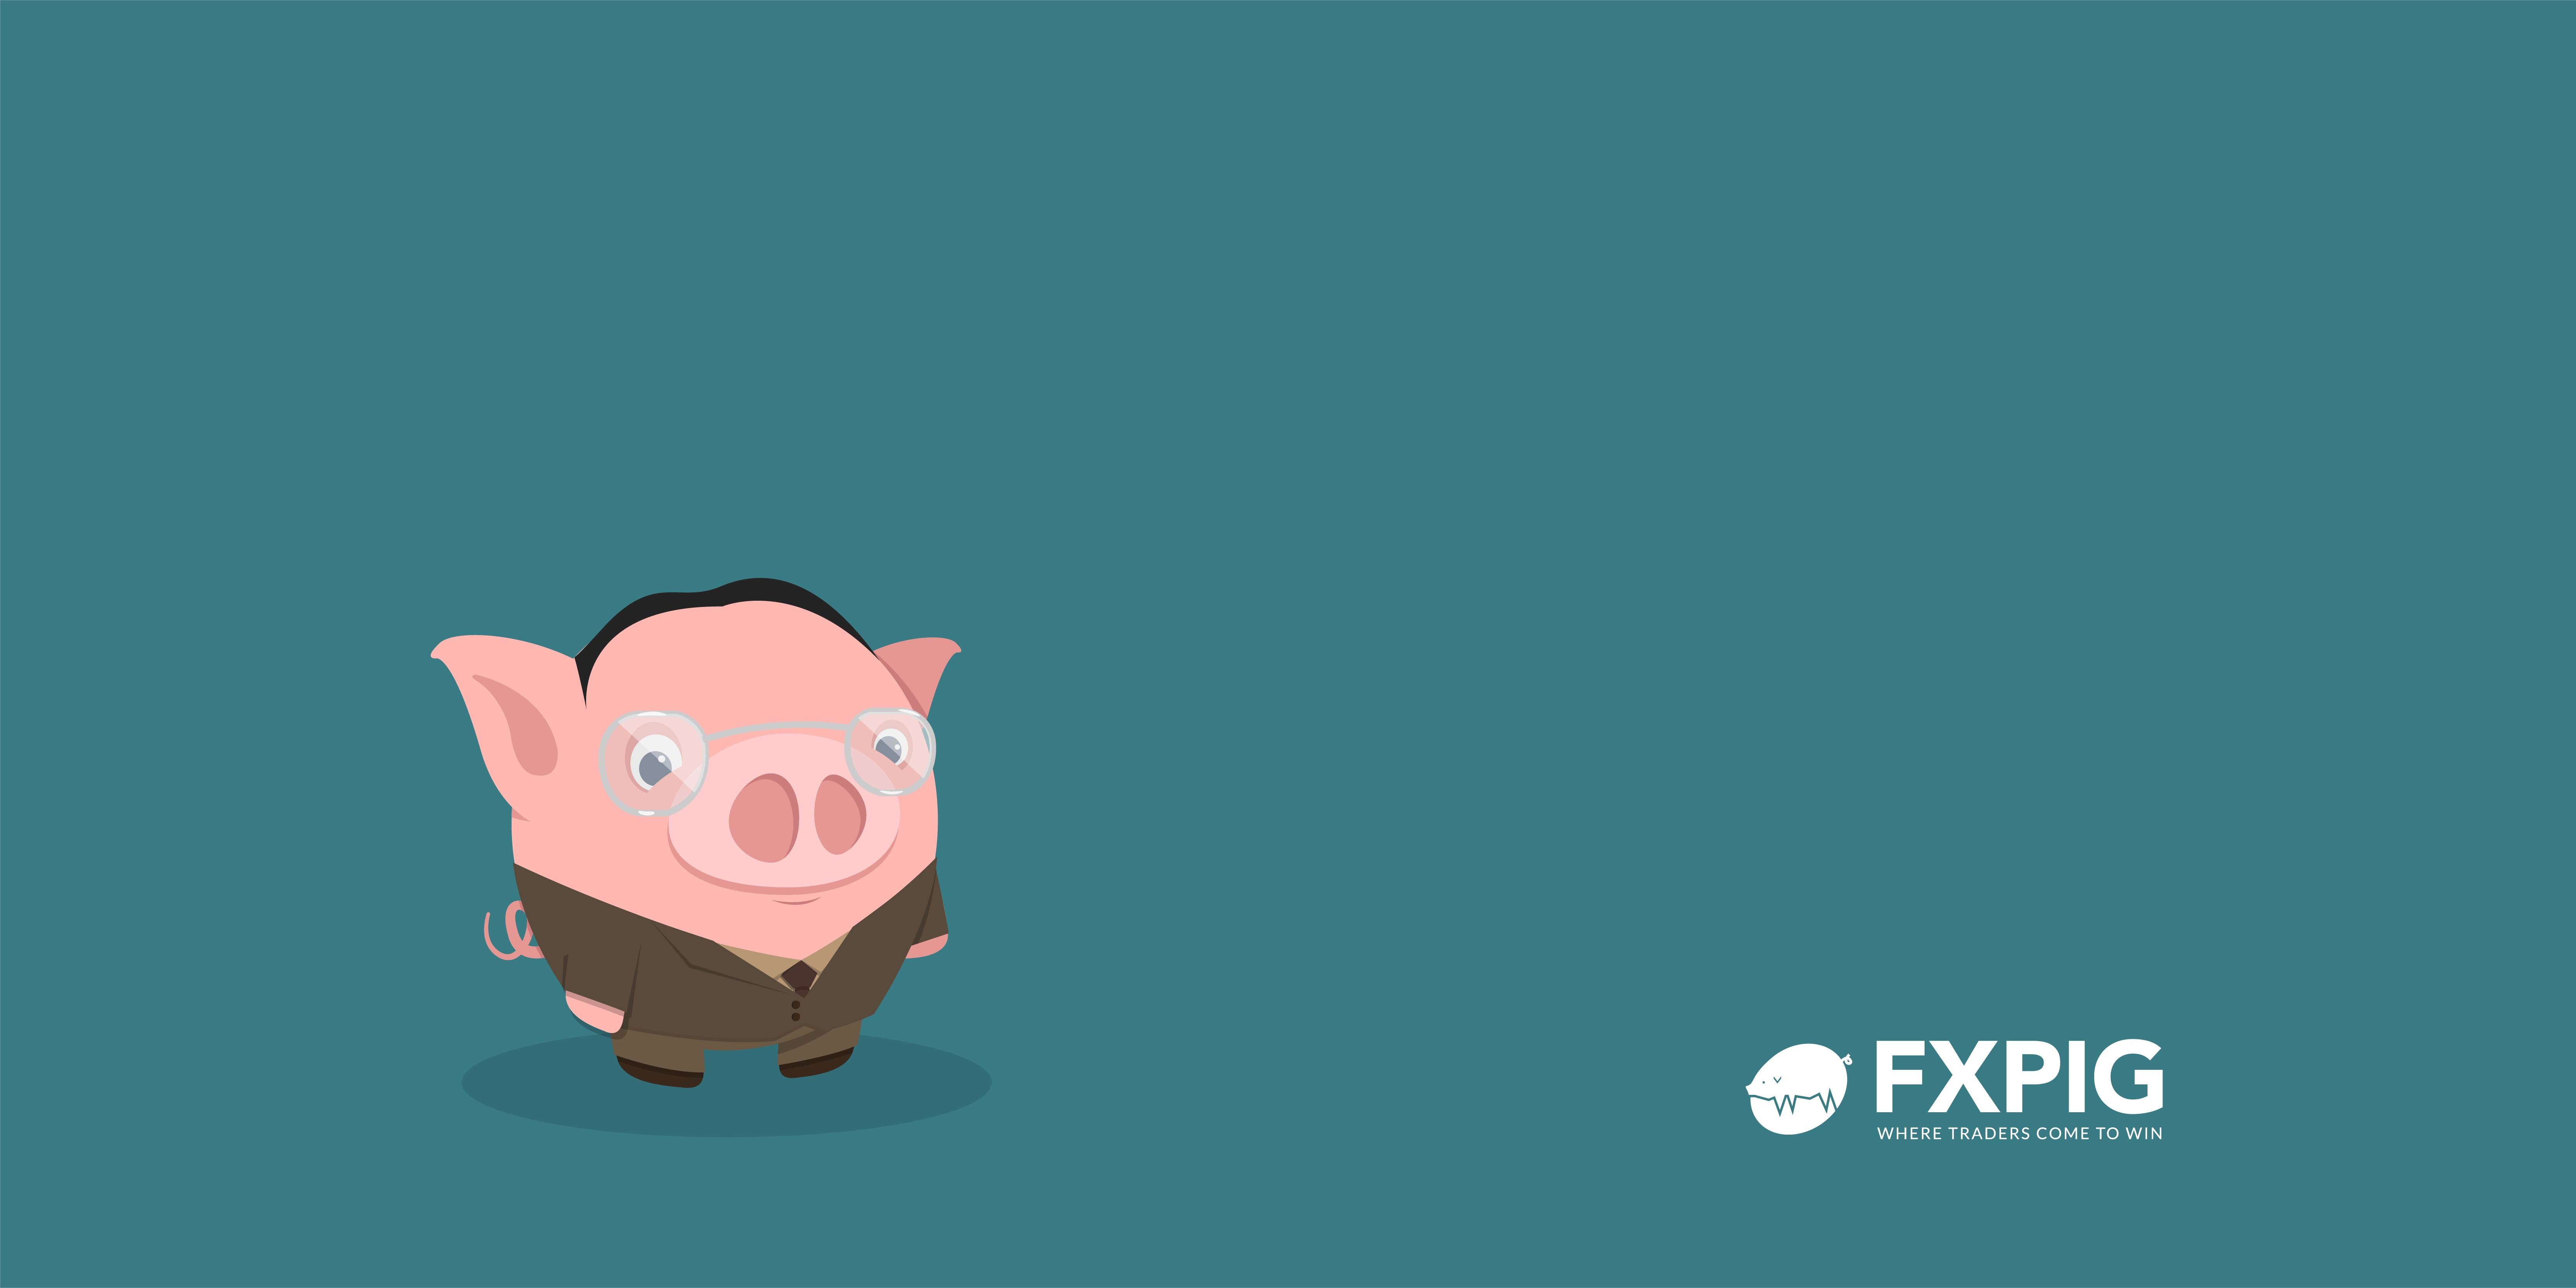 Trading-quote_do-it-better-or-dont-do-it-Fisher_FXPIG_FOREX